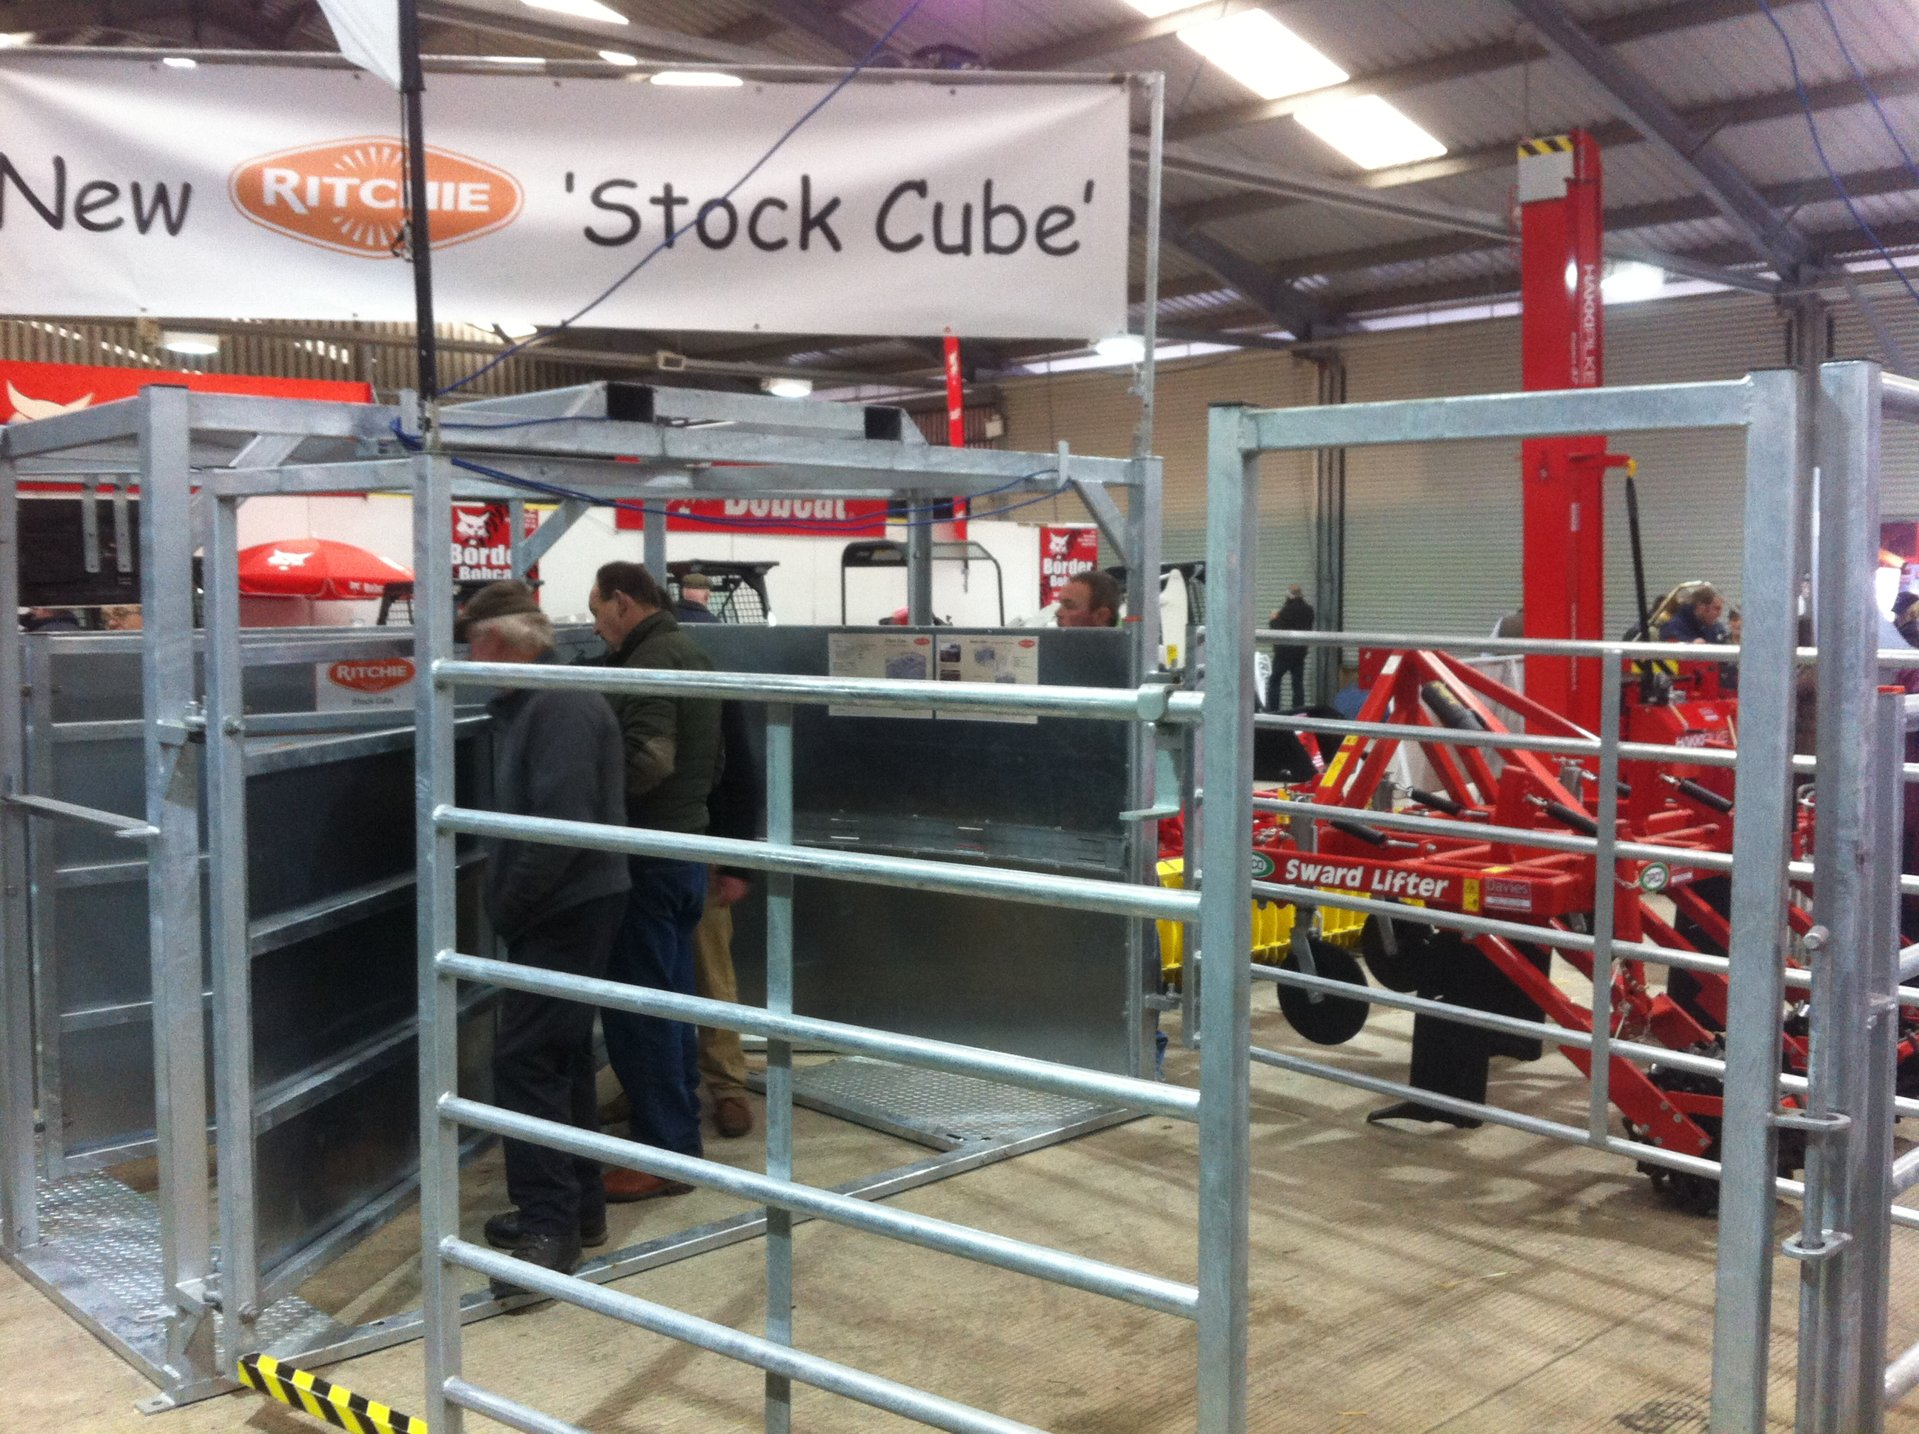 Ritchie stock cube | The Farming Forum